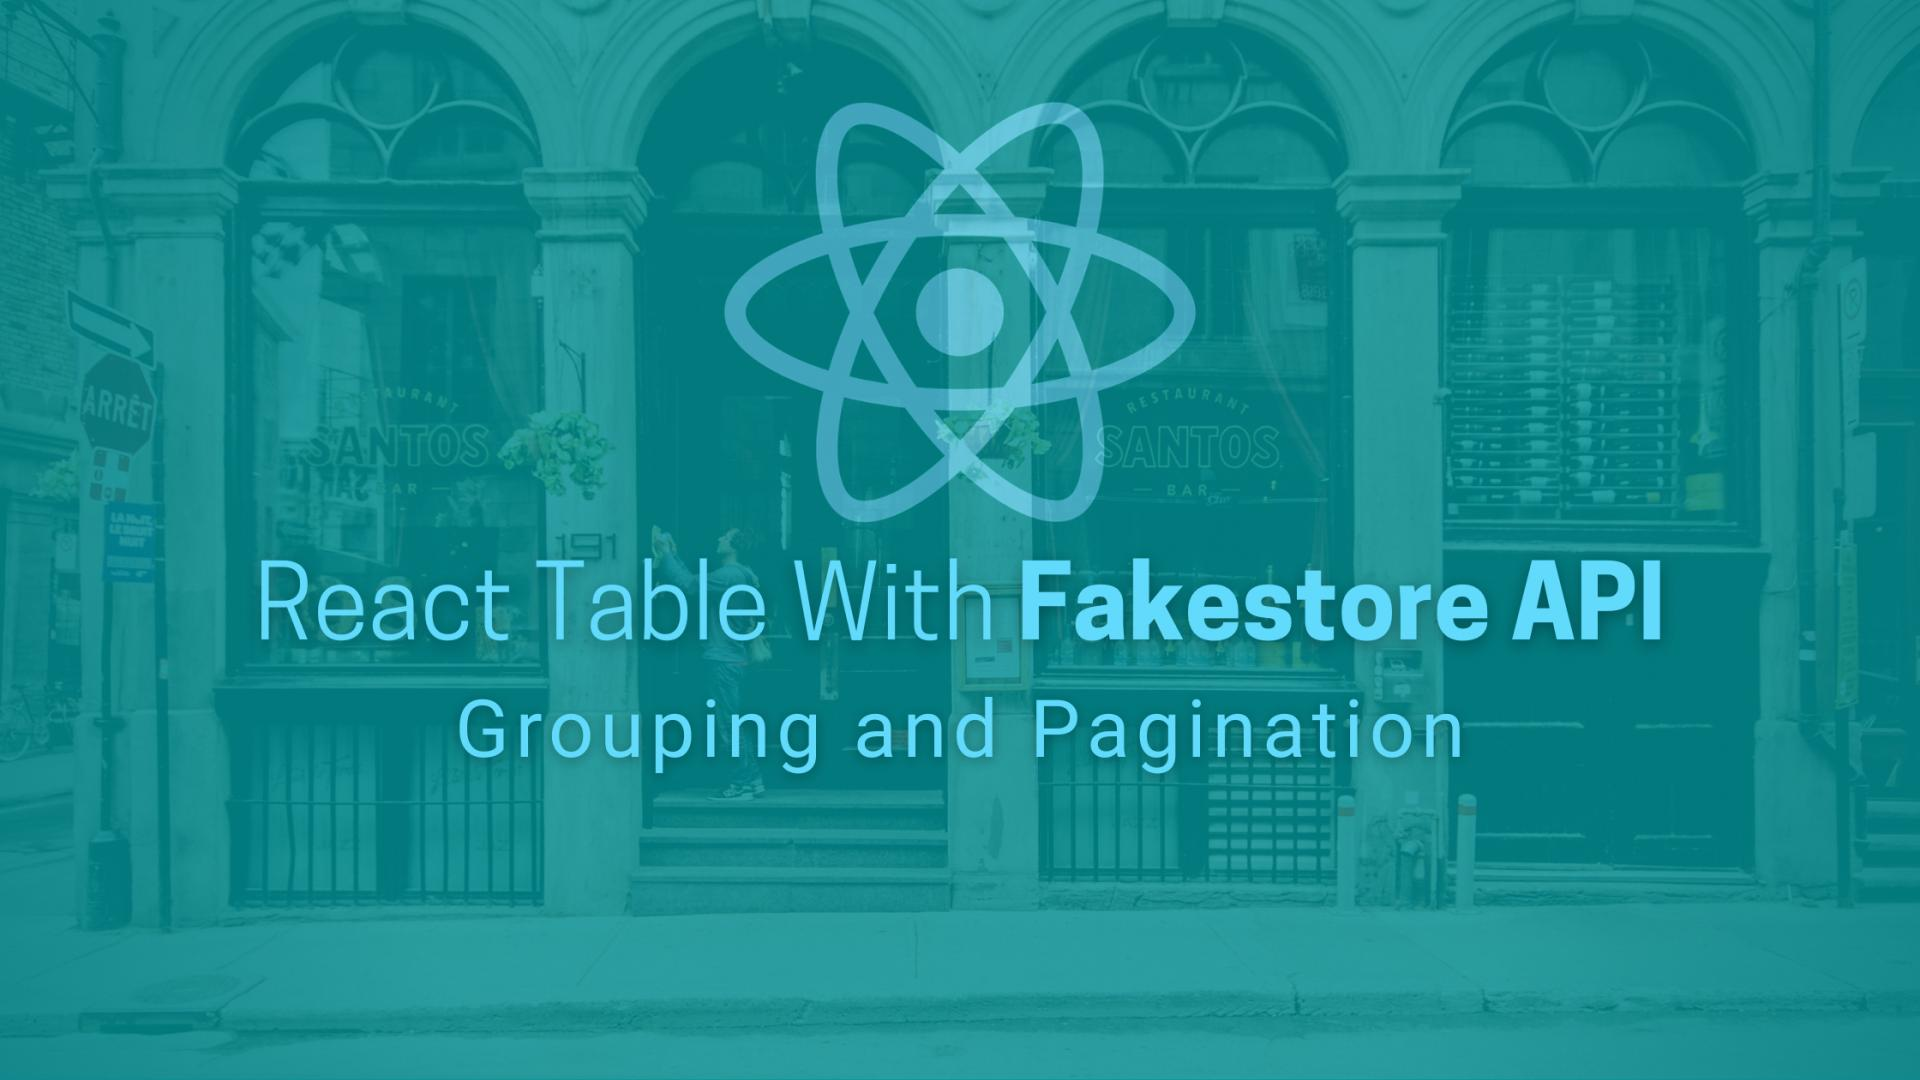 Getting Started With React Table With Fakestore API #3 : Grouping and Pagination